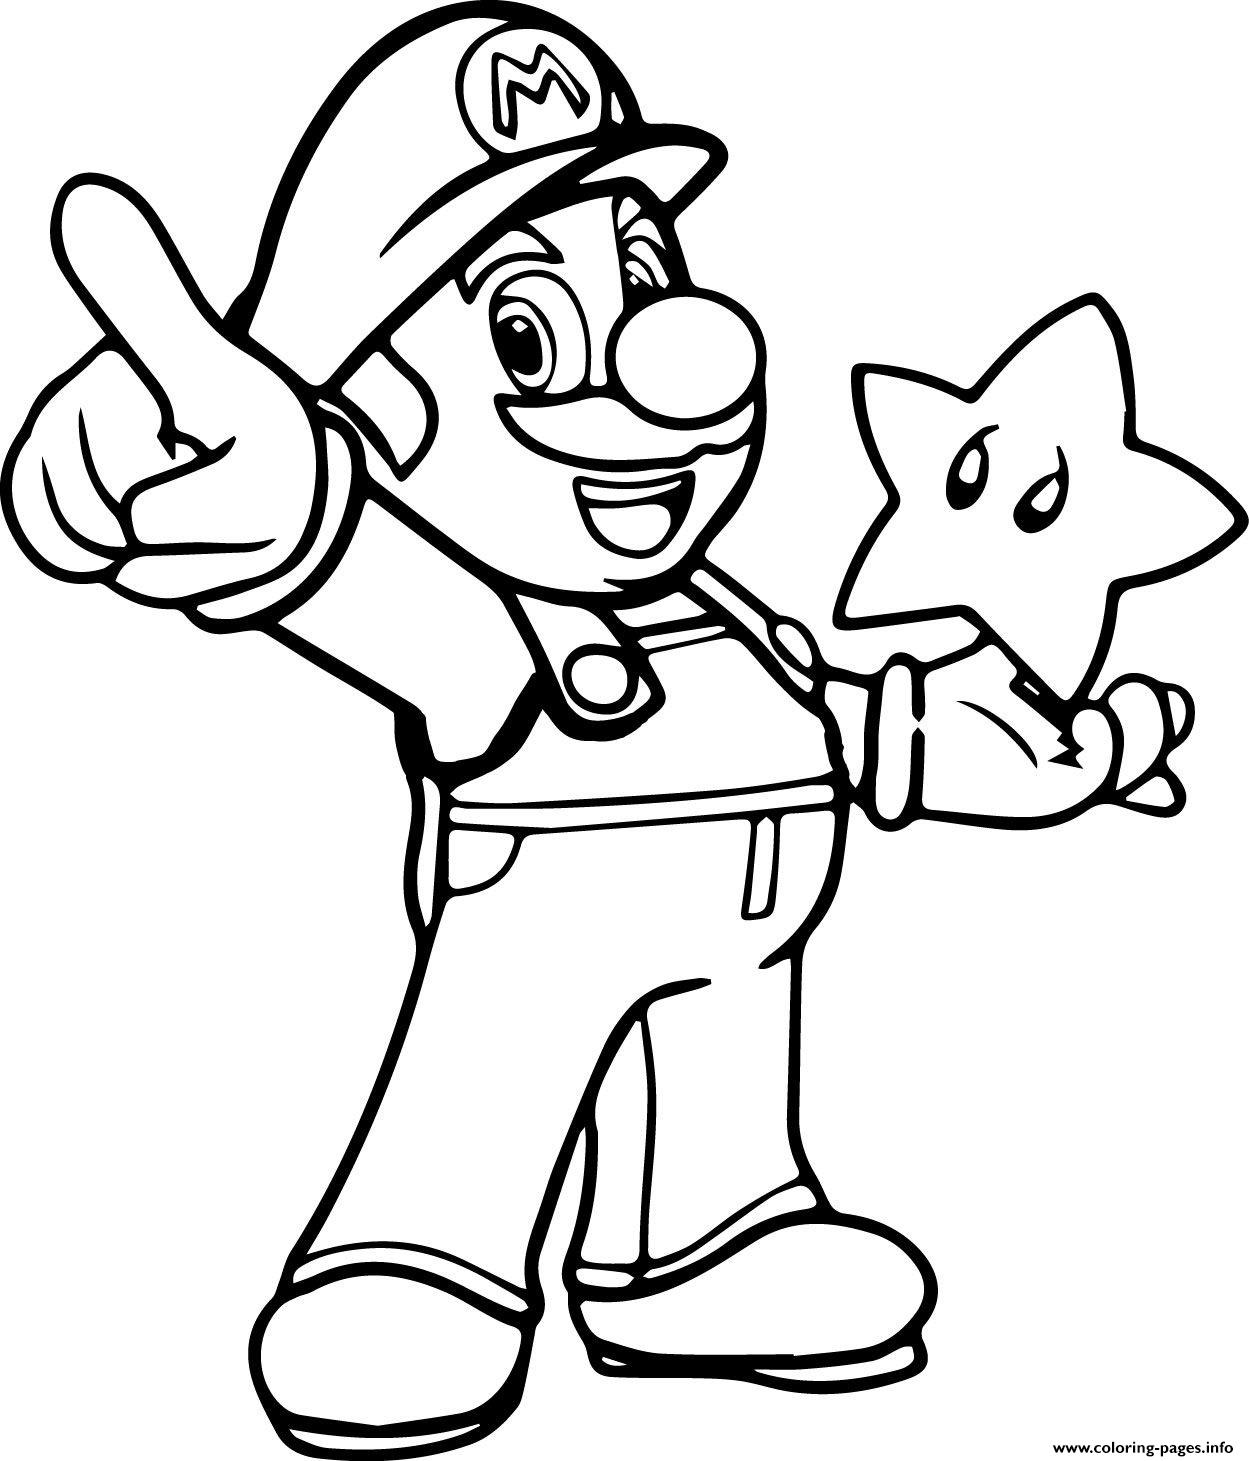 mario maker 2 coloring pages mario bros 2 colouring pages super mario coloring pages maker coloring 2 mario pages